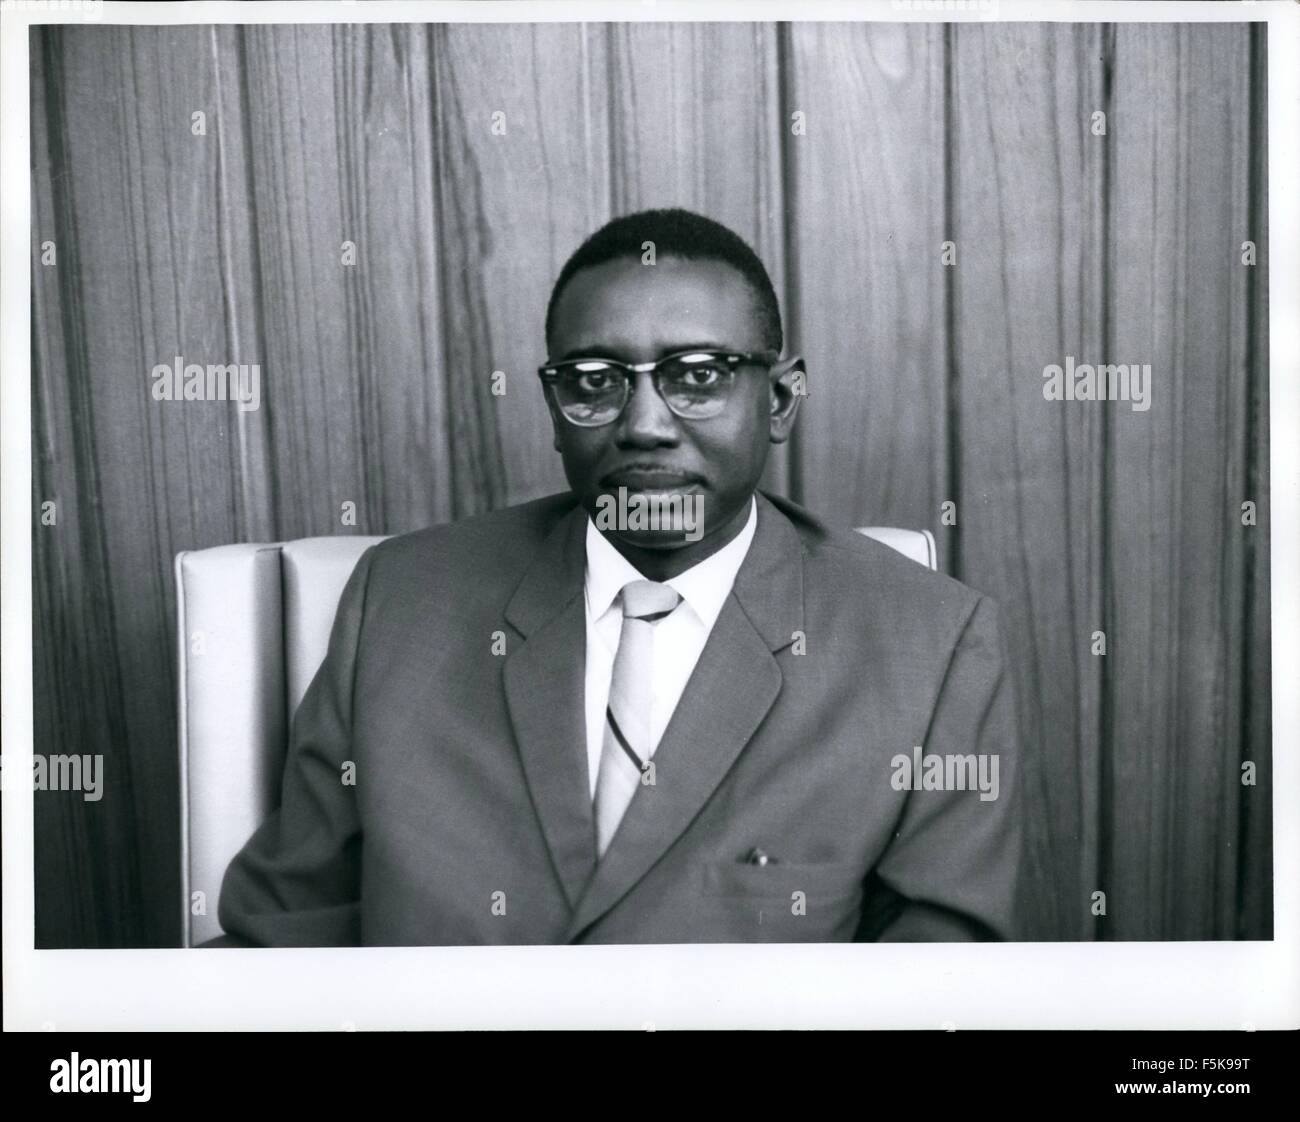 1968 - Monrovia, Liberia - Rudolph Grimes, Secretary of State, 43 years old, education: B.A. University of Liberia; - Stock Image